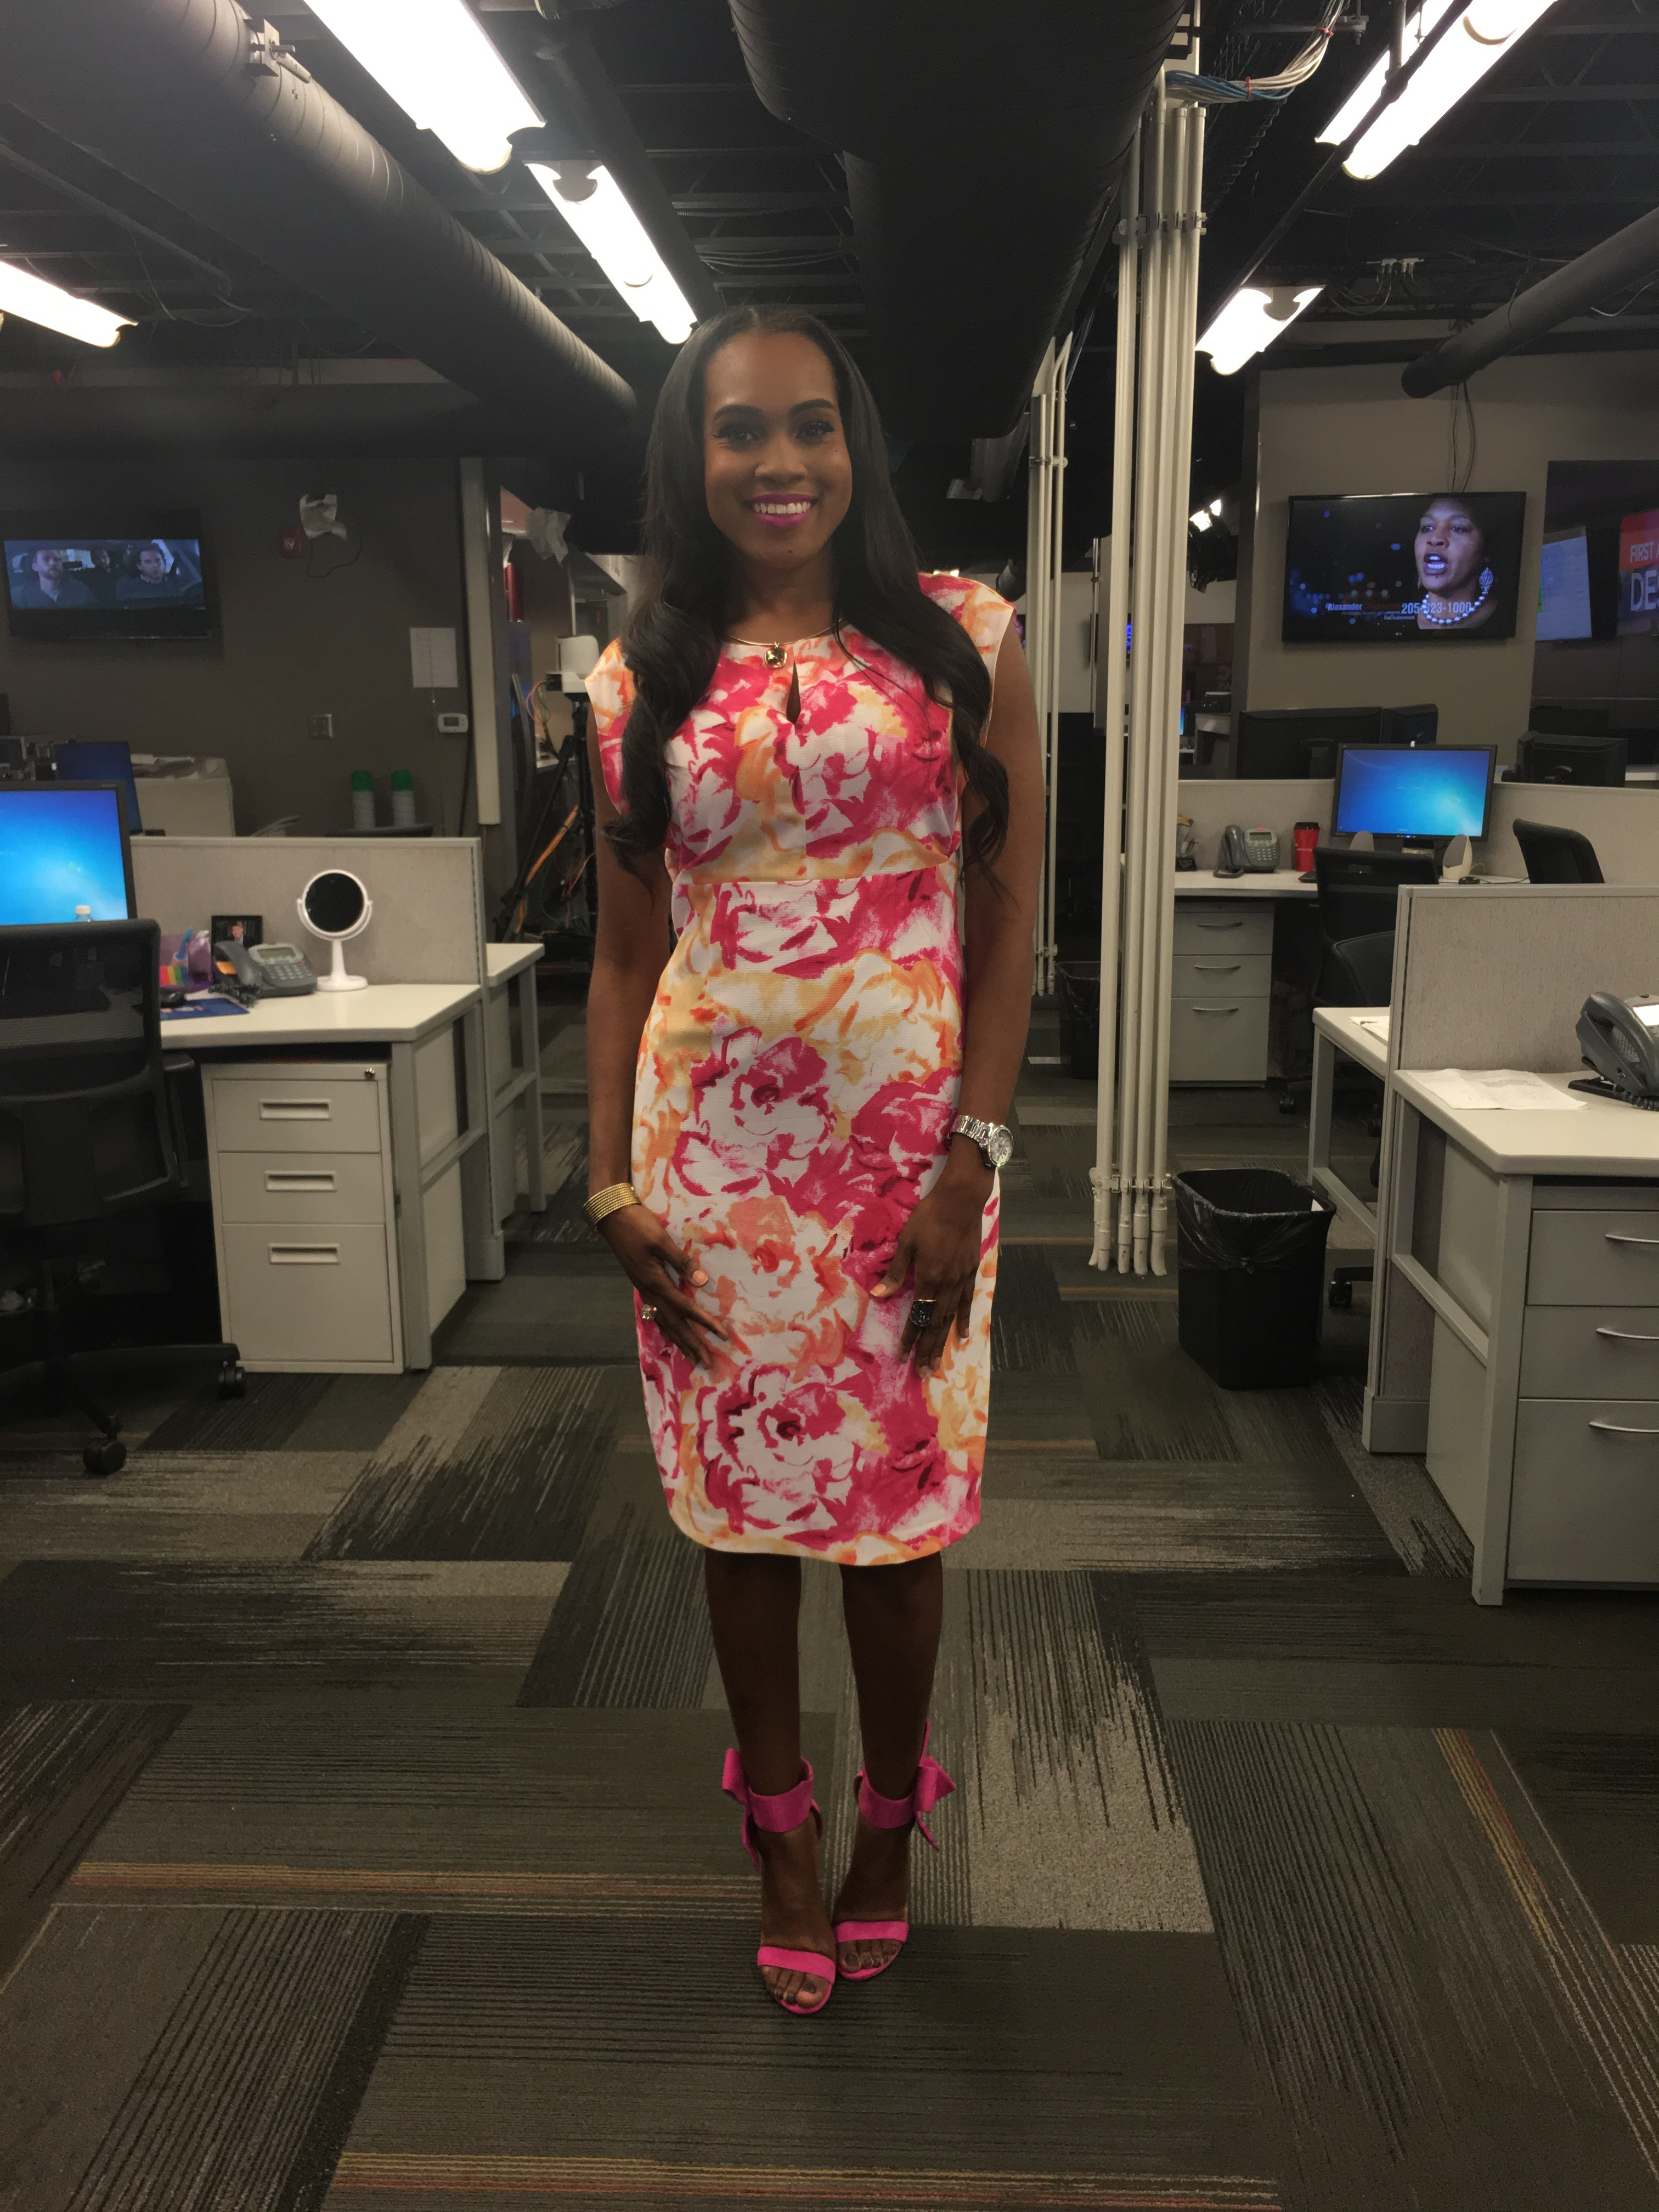 Style-Files-What-to-wear-to-work-Covington Womens-Sleeveless-Pink-floral-Dress-Betsey-Johnson-bow-sandals-in-Pink-oohlalablog-4